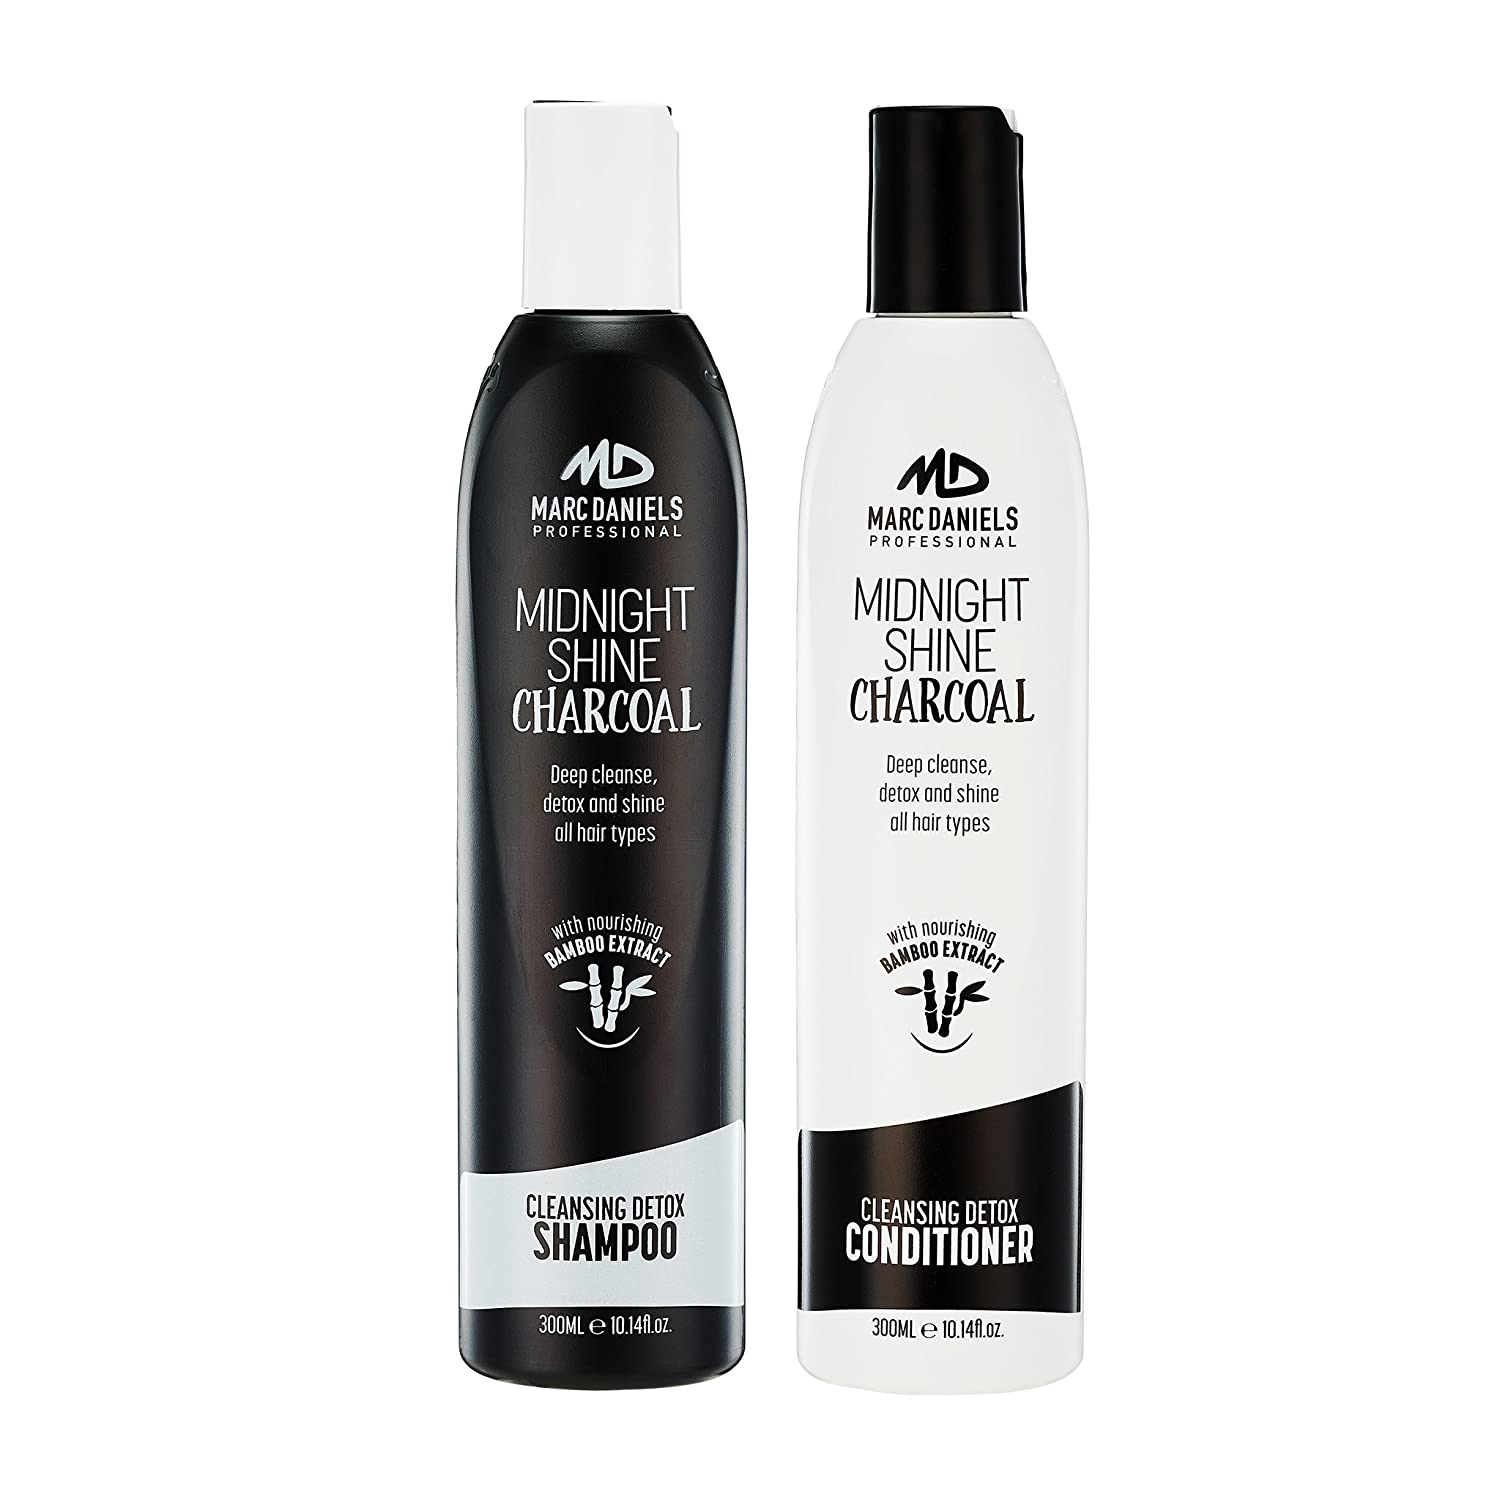 Charcoal Clarifying Shampoo & Conditioner Set Sulfate Free with Bamboo Extract Detoxifying for All Hair Types - Color Treated, Oily, Frizzy – for Women & Men by MARC DANIELS Professional